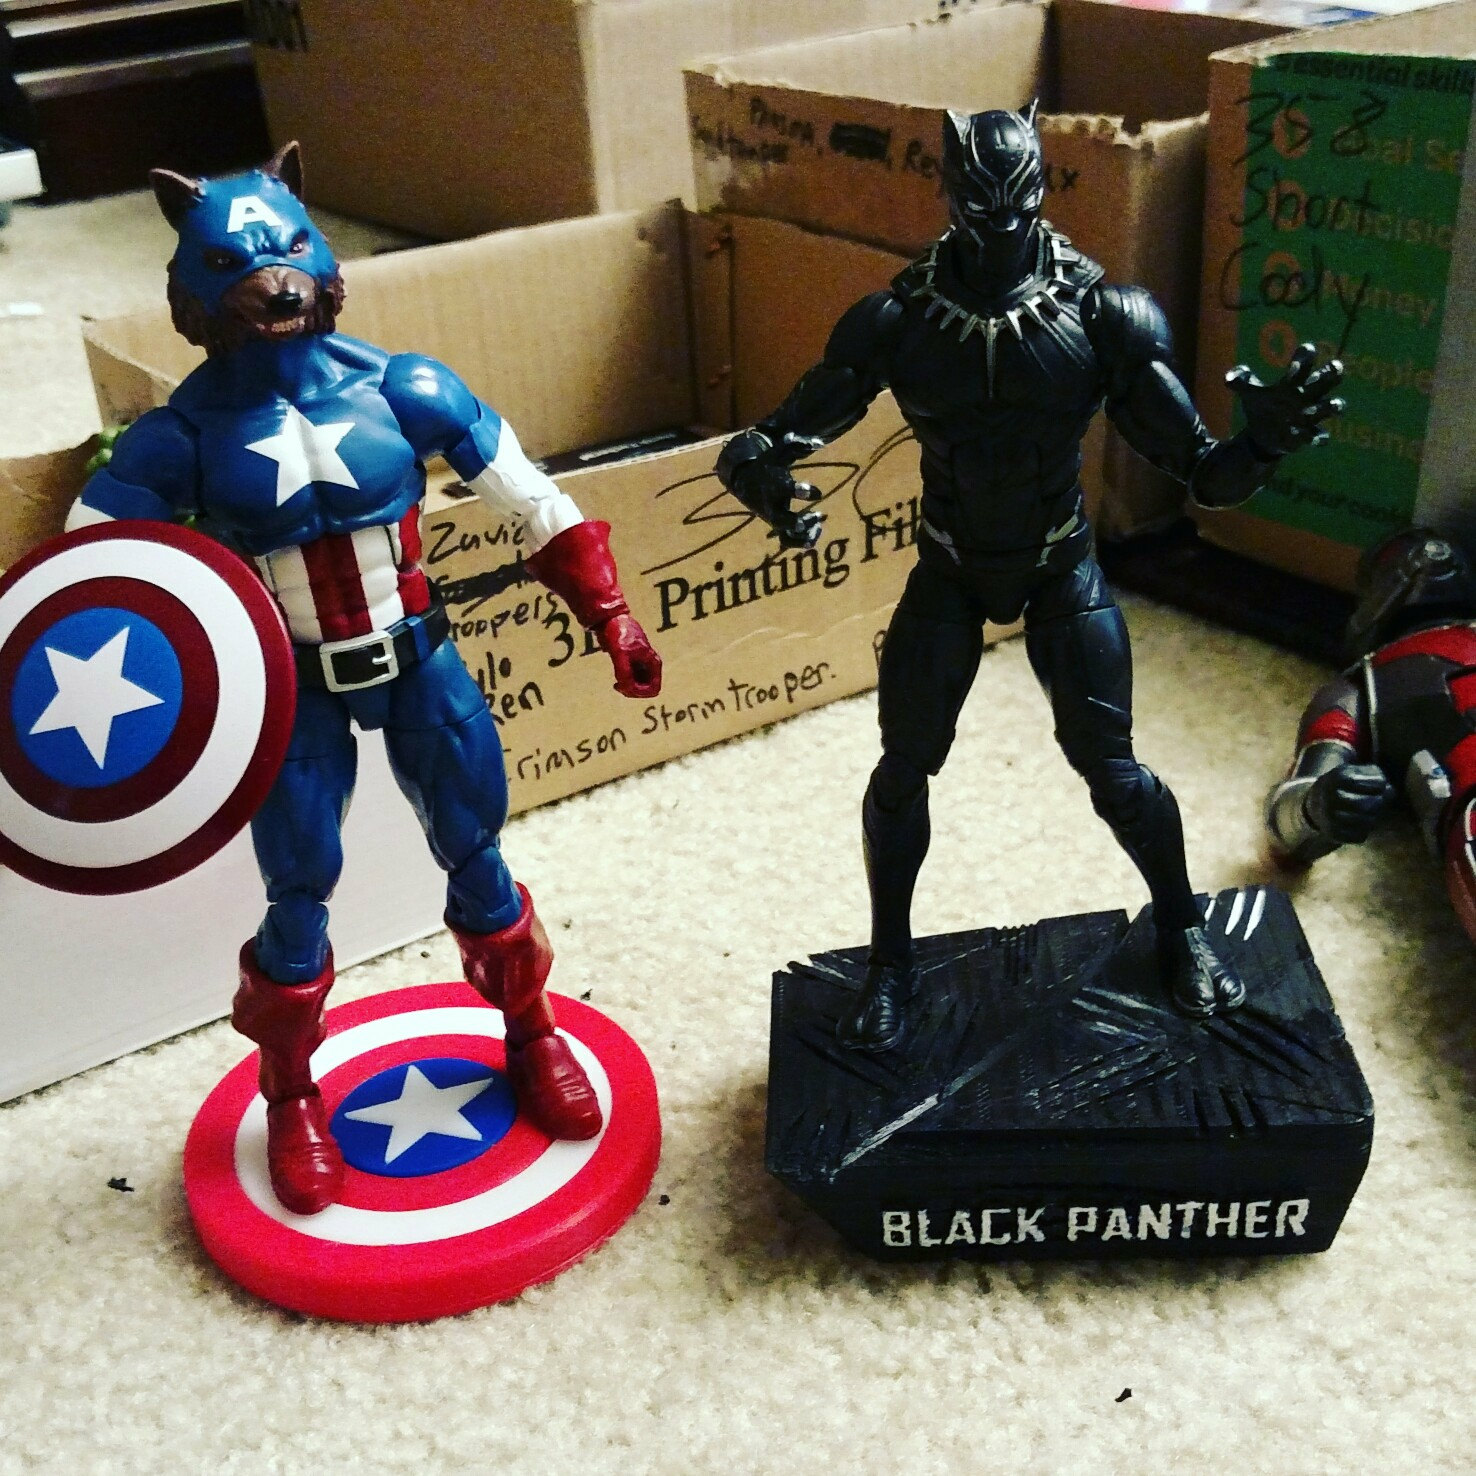 6 Inch Marvel Legends Captain America Warewolf Figure With A Custom Display Stand Marvel Legends Custom Displays Black Panther